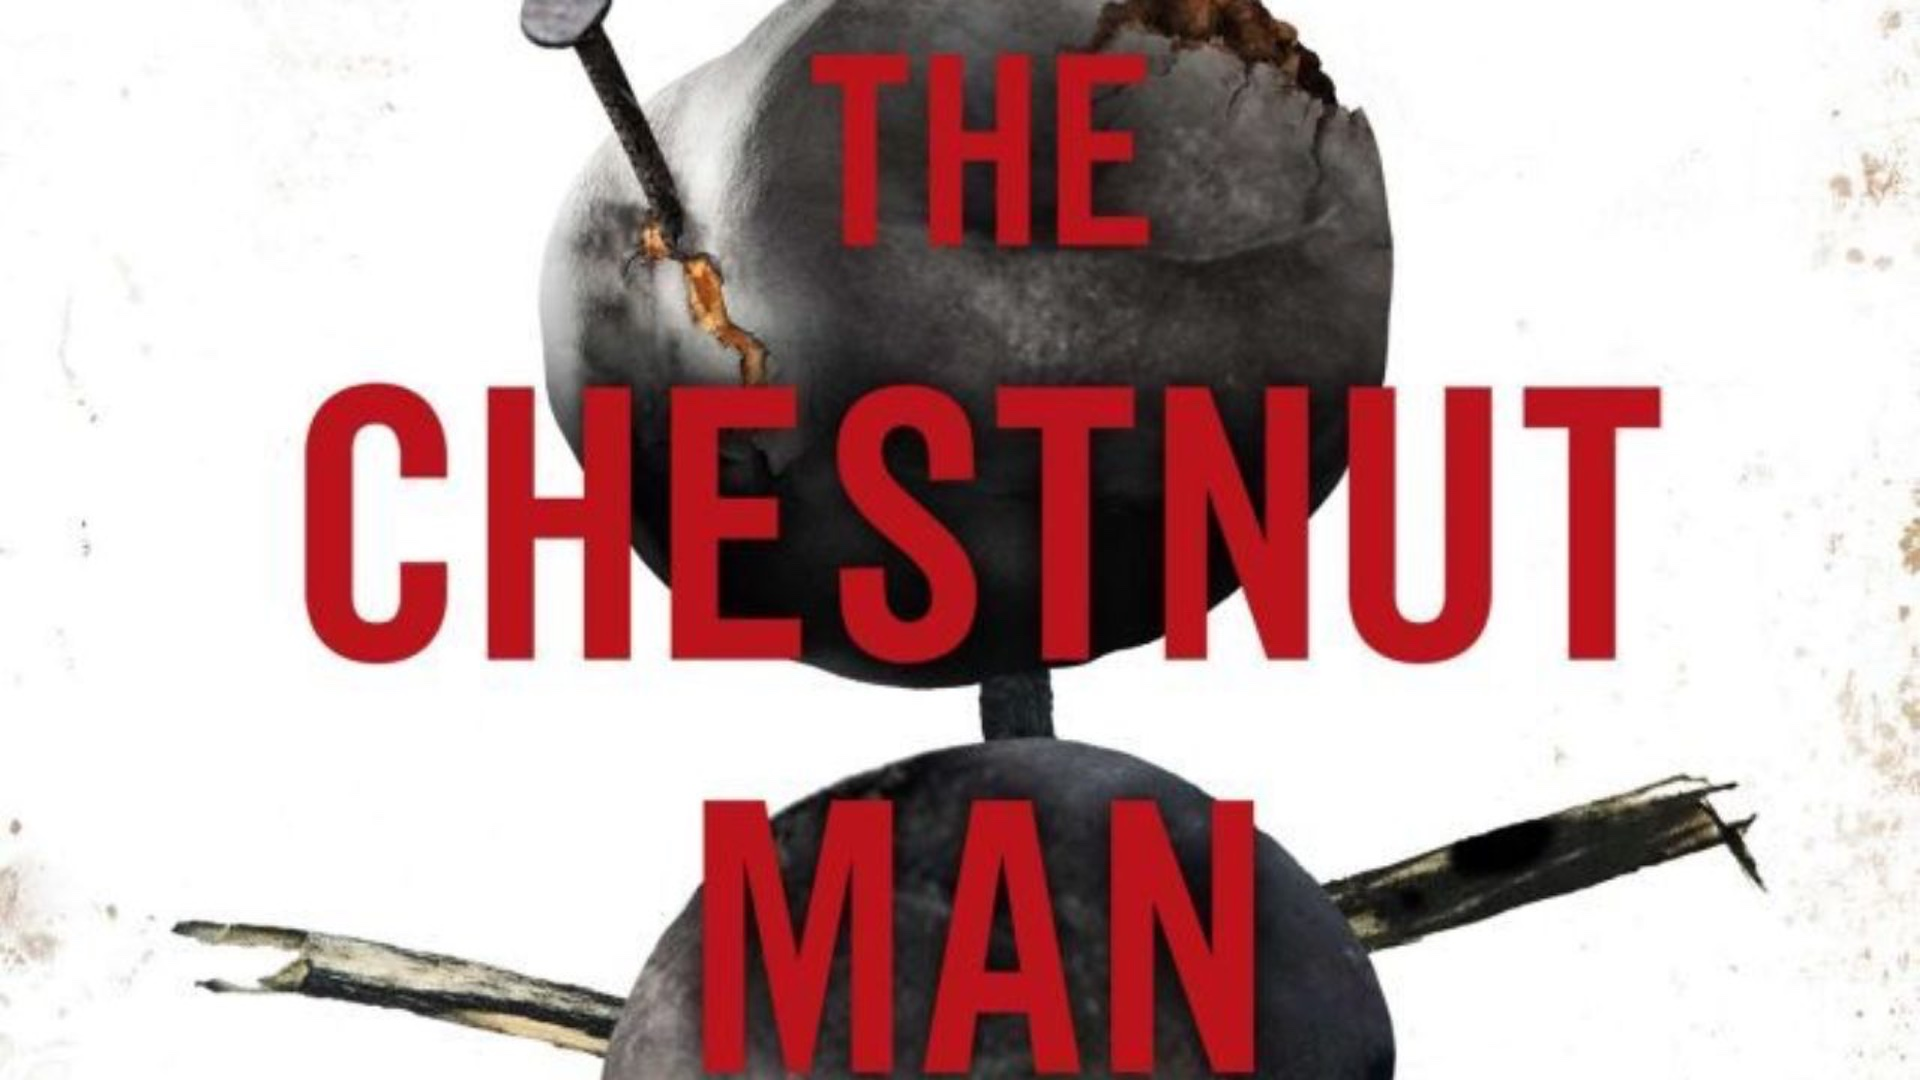 the-creator-of-the-kiling-is-developing-a-police-thriller-series-for-netflix-called-the-chestnut-man-social.jpg